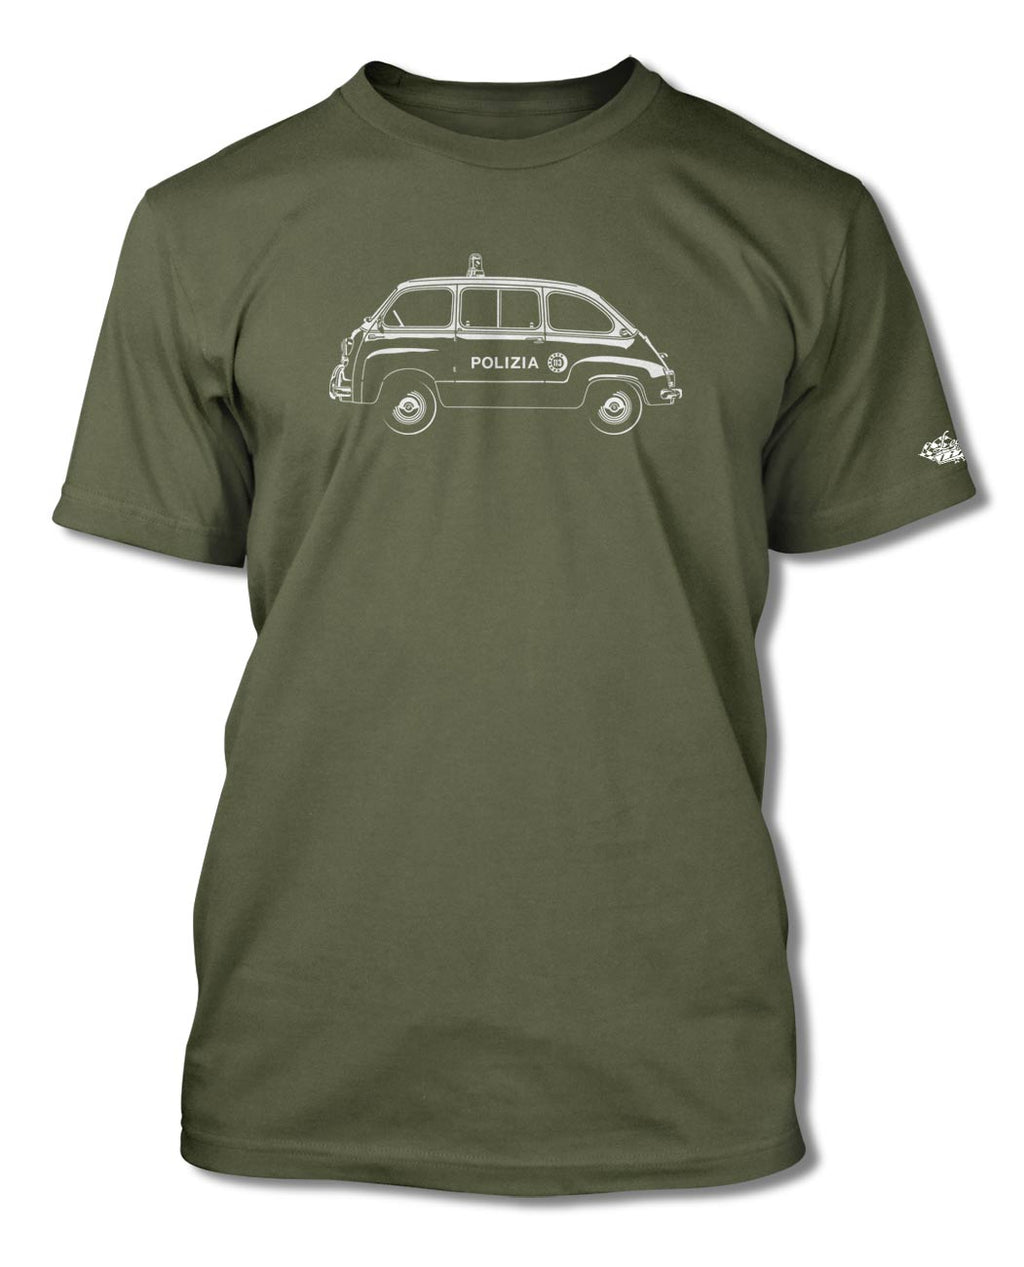 FIAT 600 Multipla Italian Polizia (police) 1956 - 1969 T-Shirt - Men - Side View